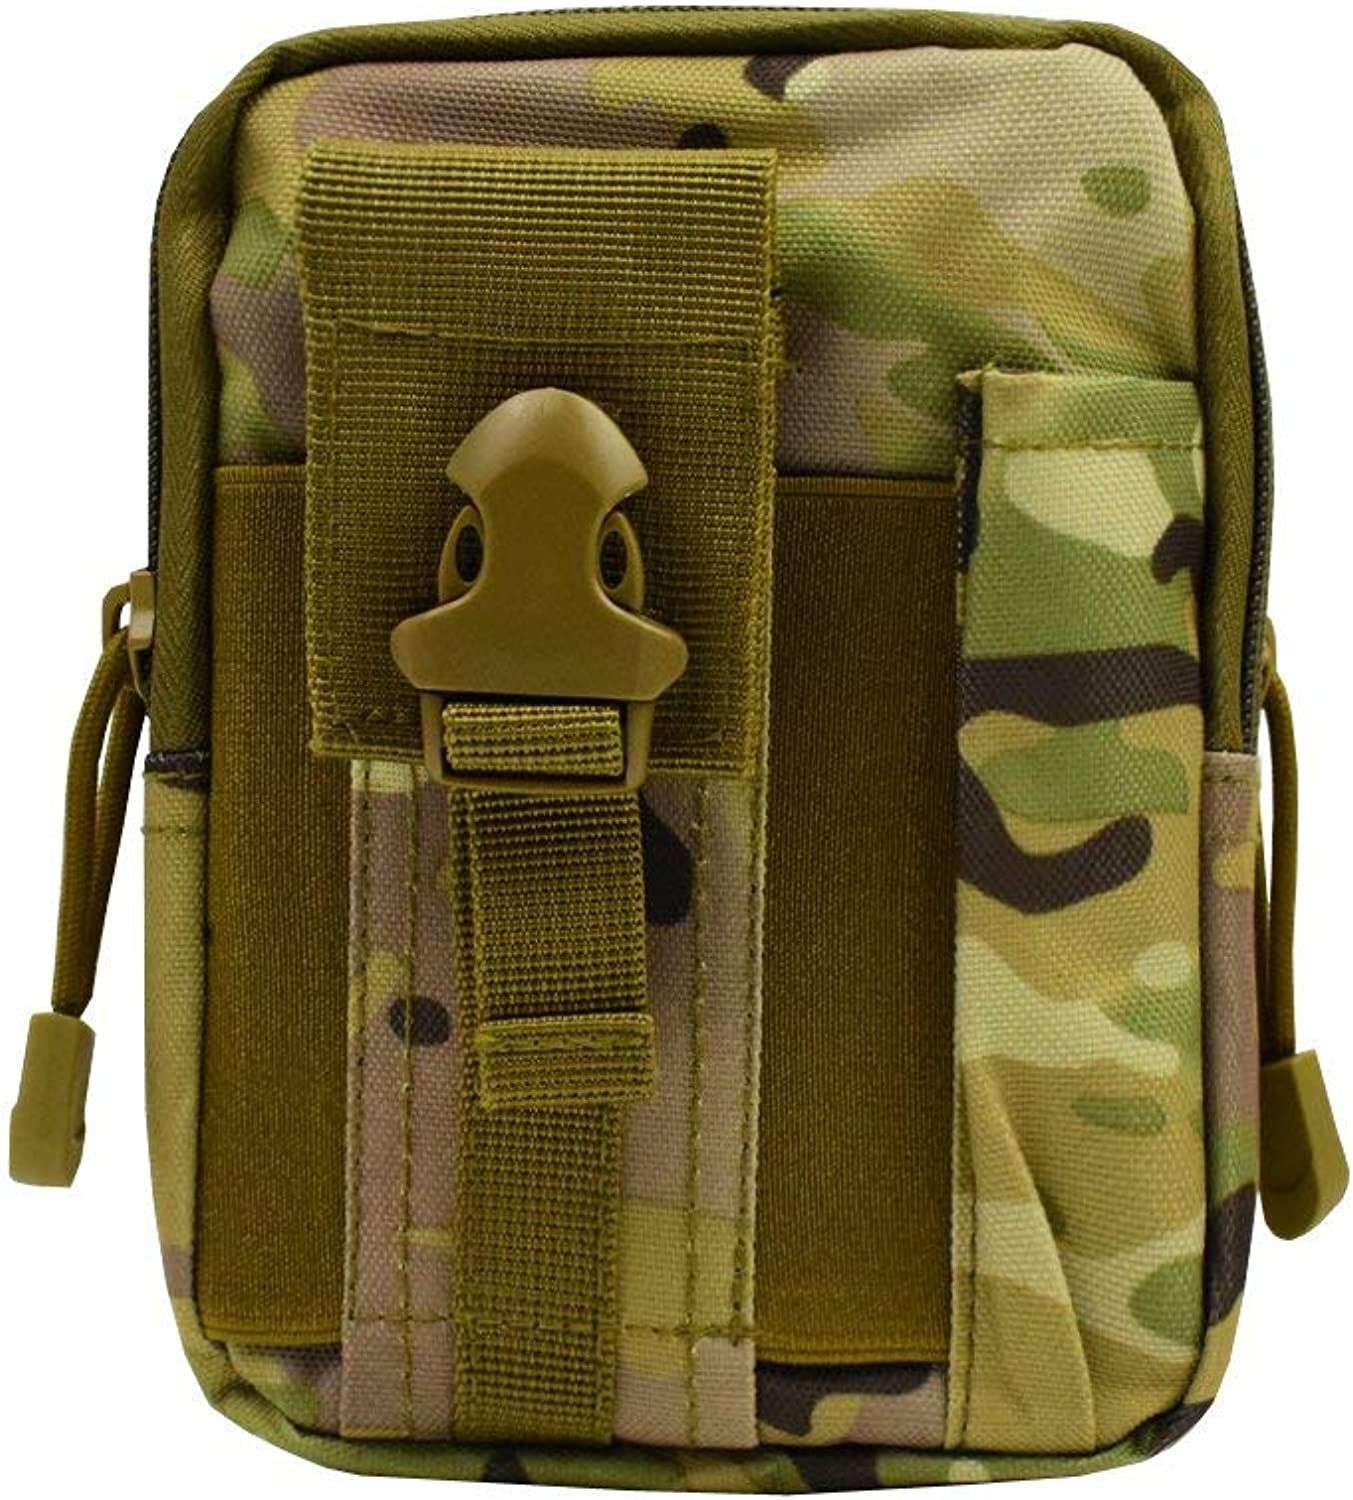 EDC MOLLE Pouches Durable Nylon Small Waist Bags Attachment